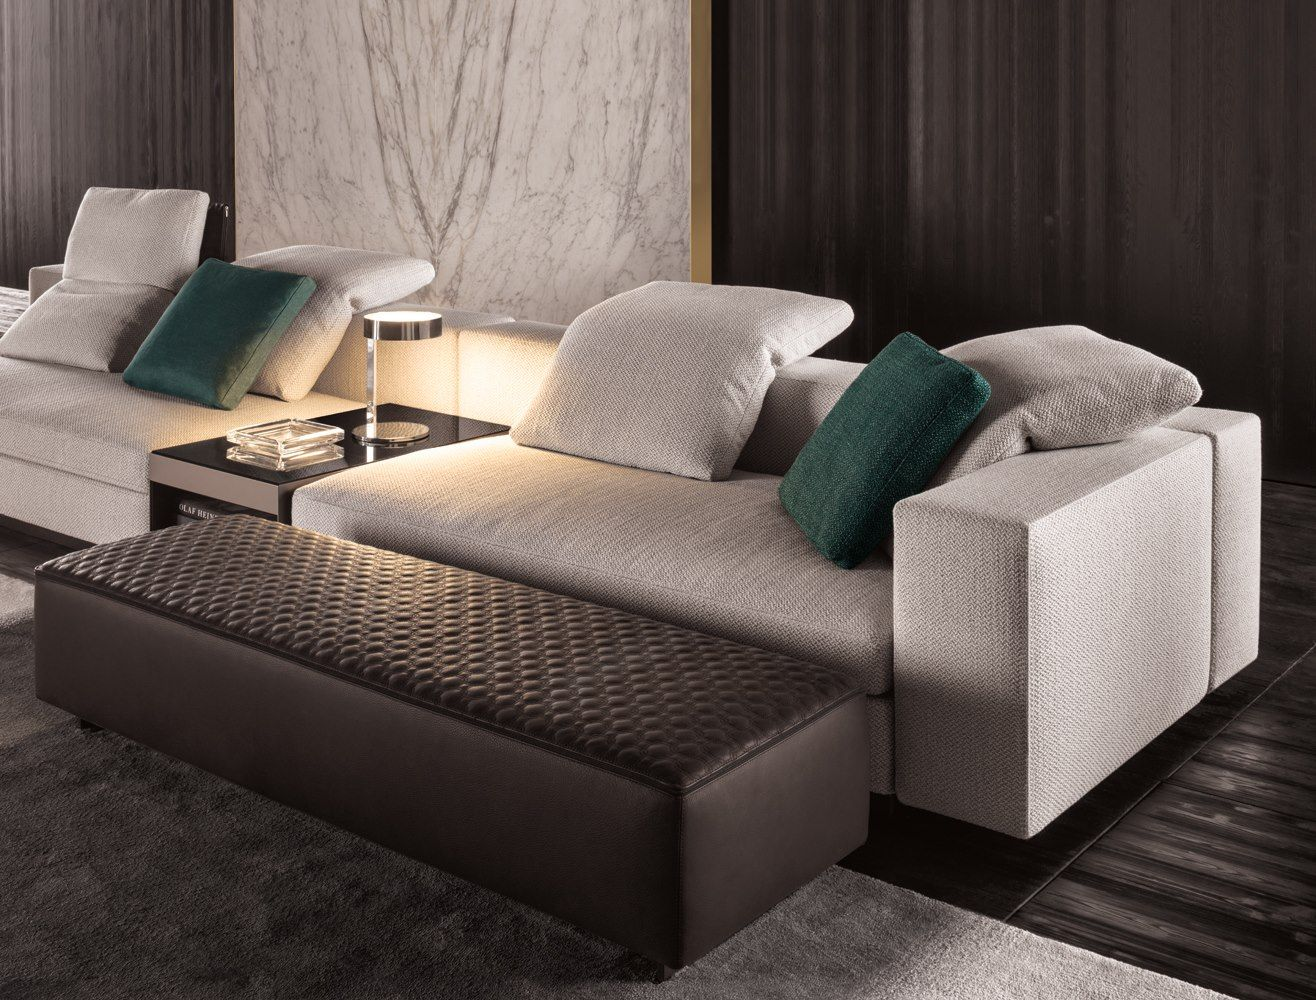 One of the best furniture brands over the world, Minotti